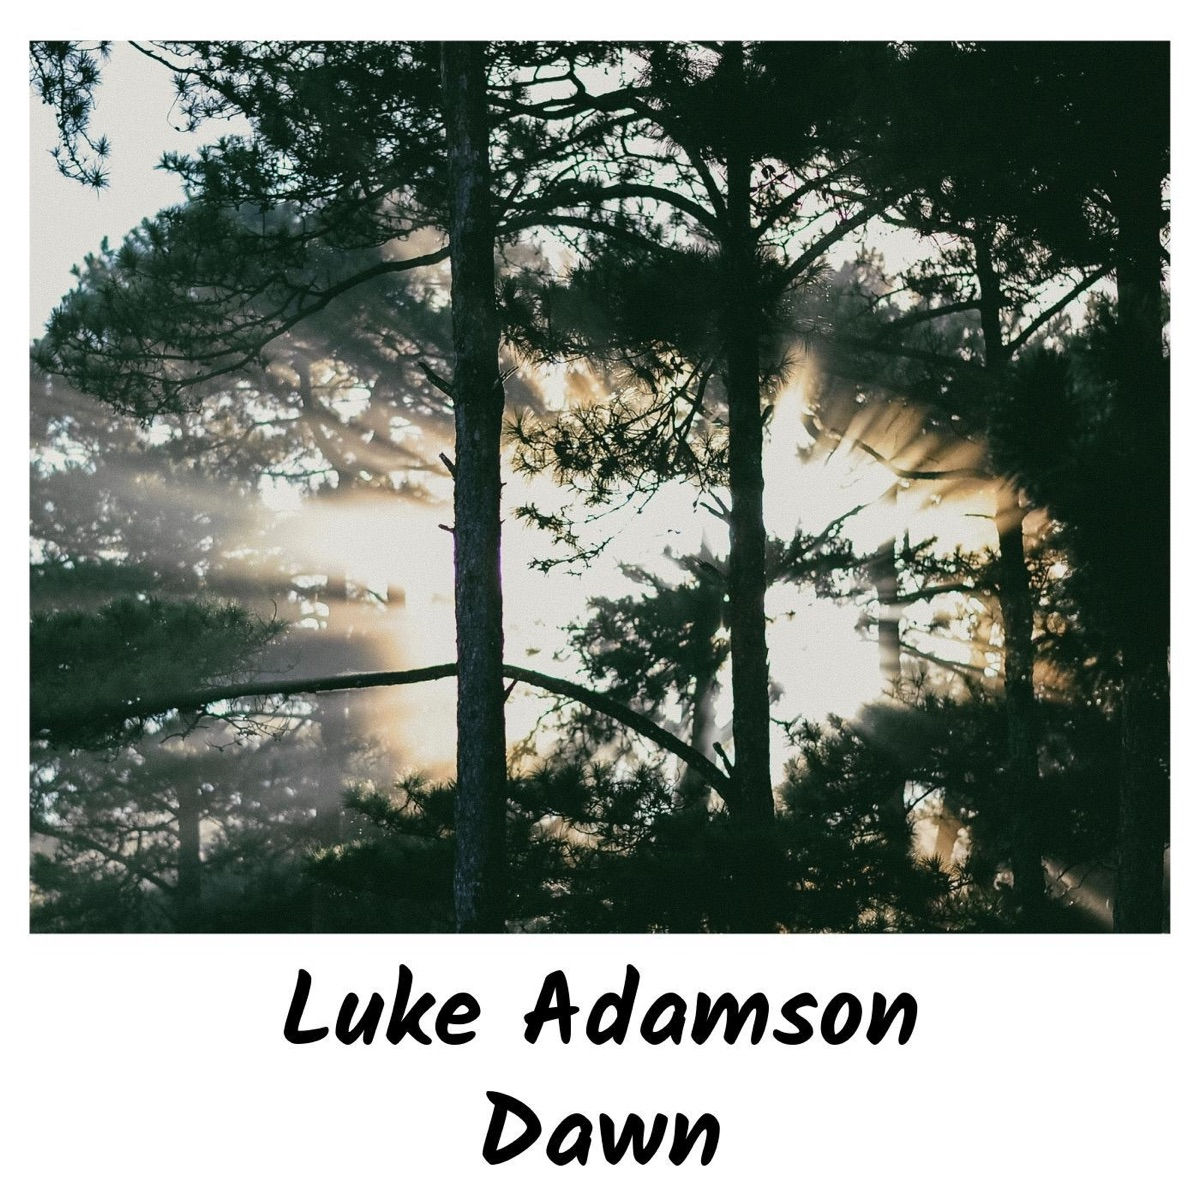 Dawn - Single Luke Adamson CD cover